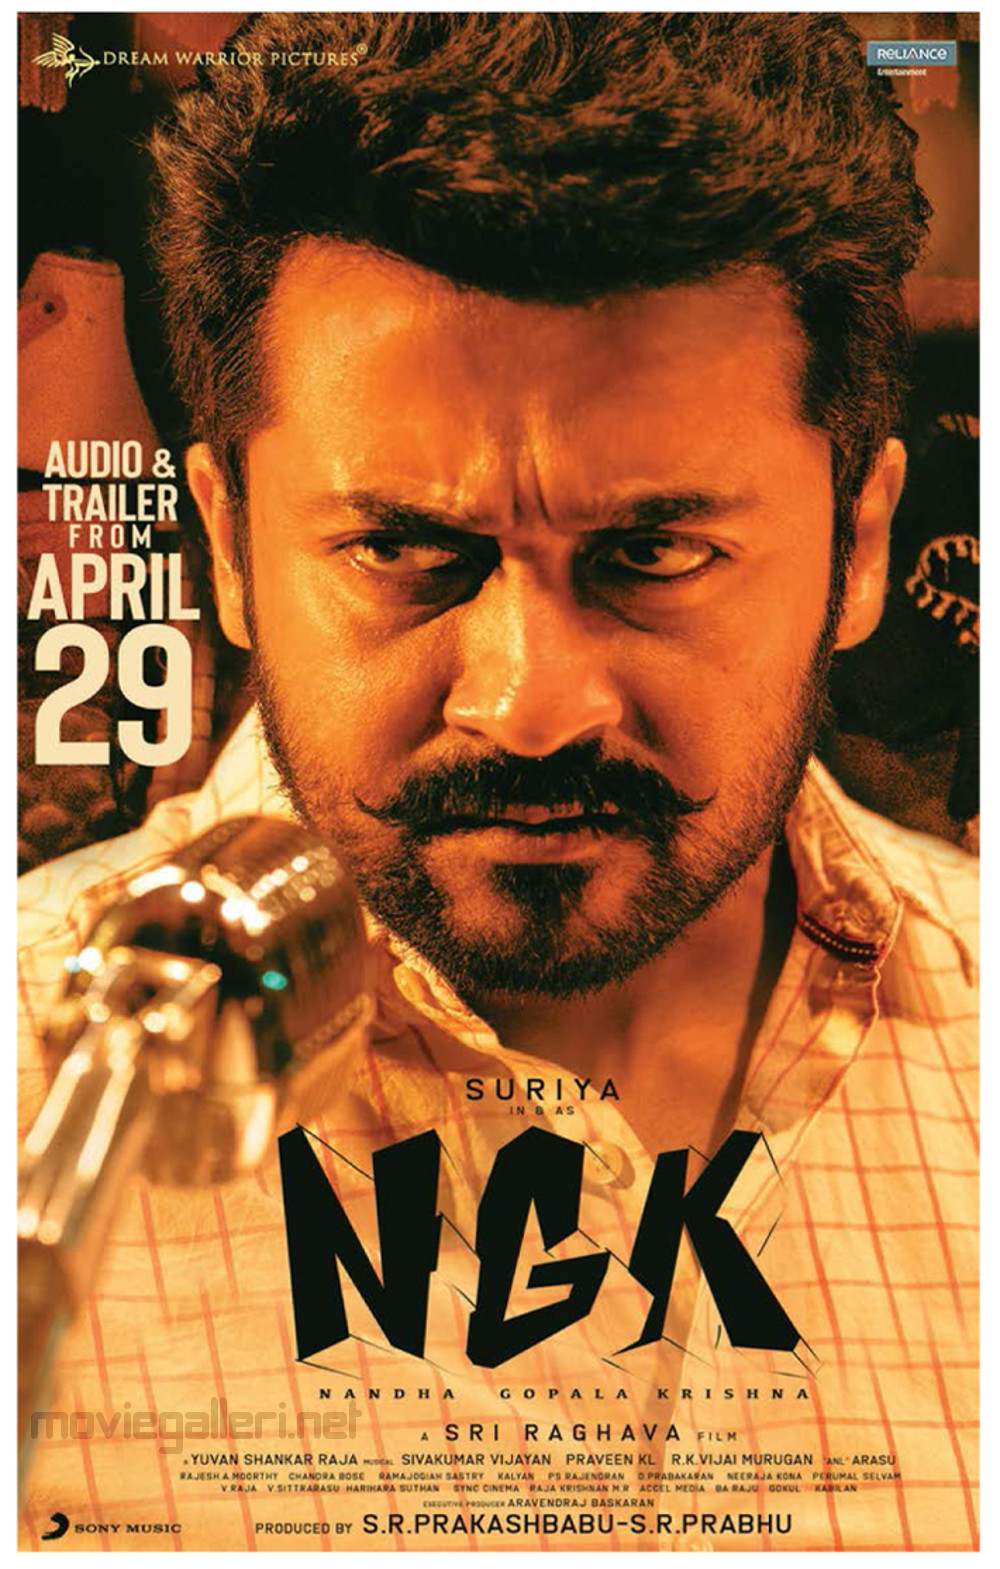 Suriya NGK Audio Trailer From April 29th Poster HD